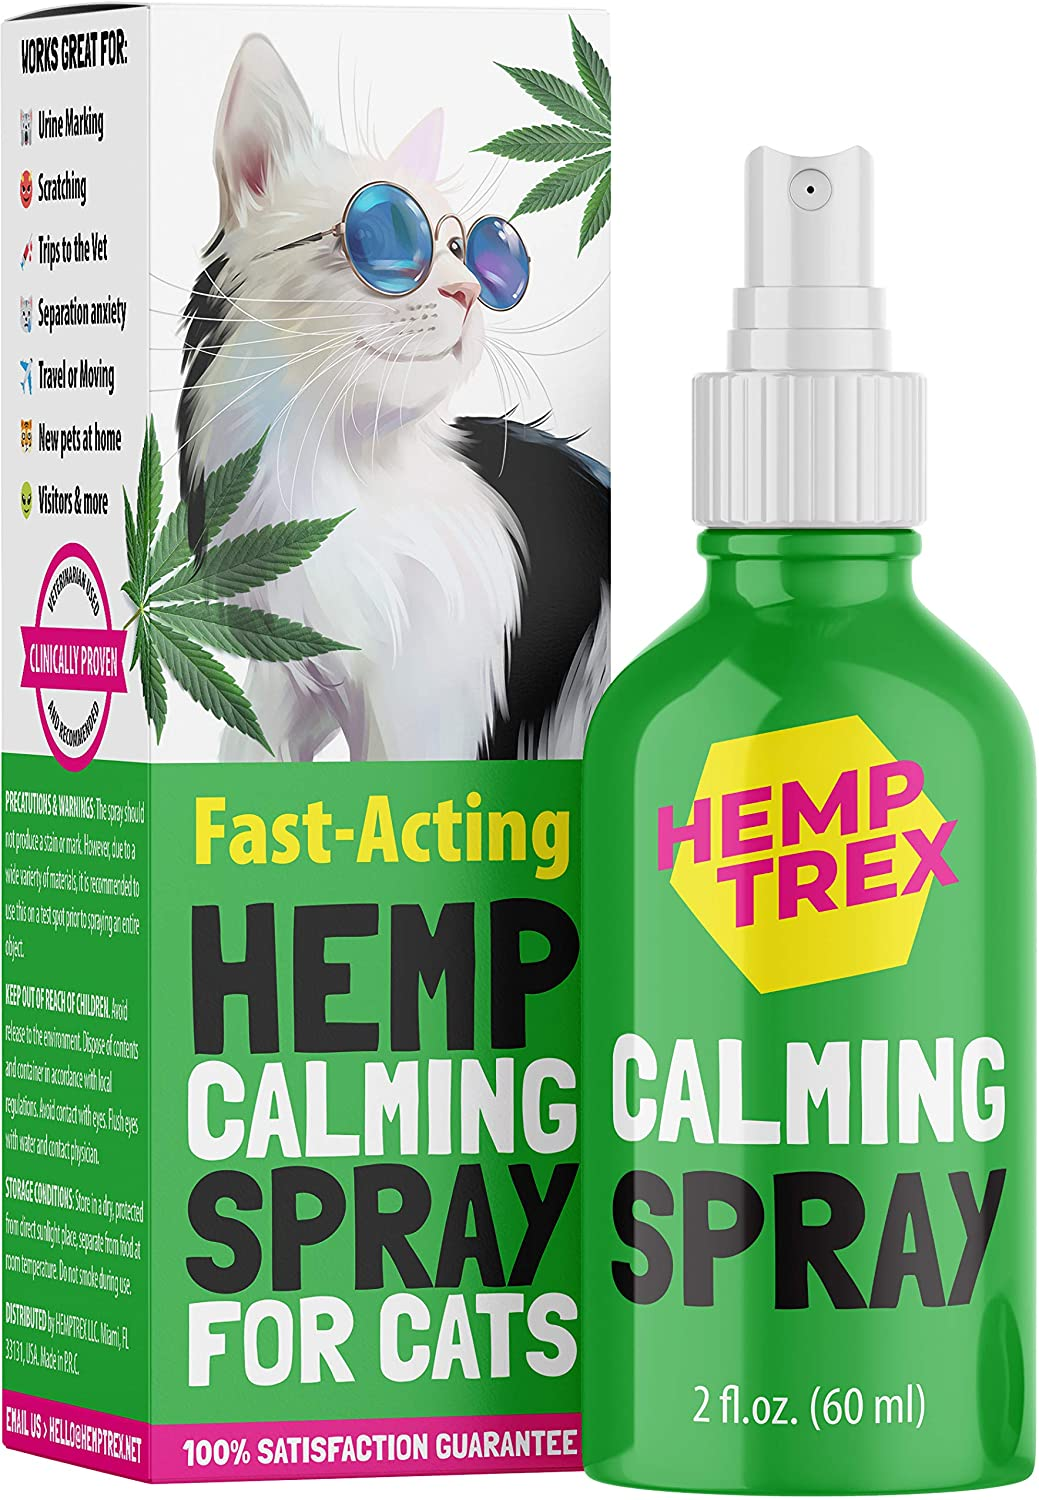 Calming Spray for Cats and Dogs with Pheromones (60ML) - #1 Natures Miracle - Reduce Anxiety, Relax. Vet Visits, Travel,Thunder Relief and More.